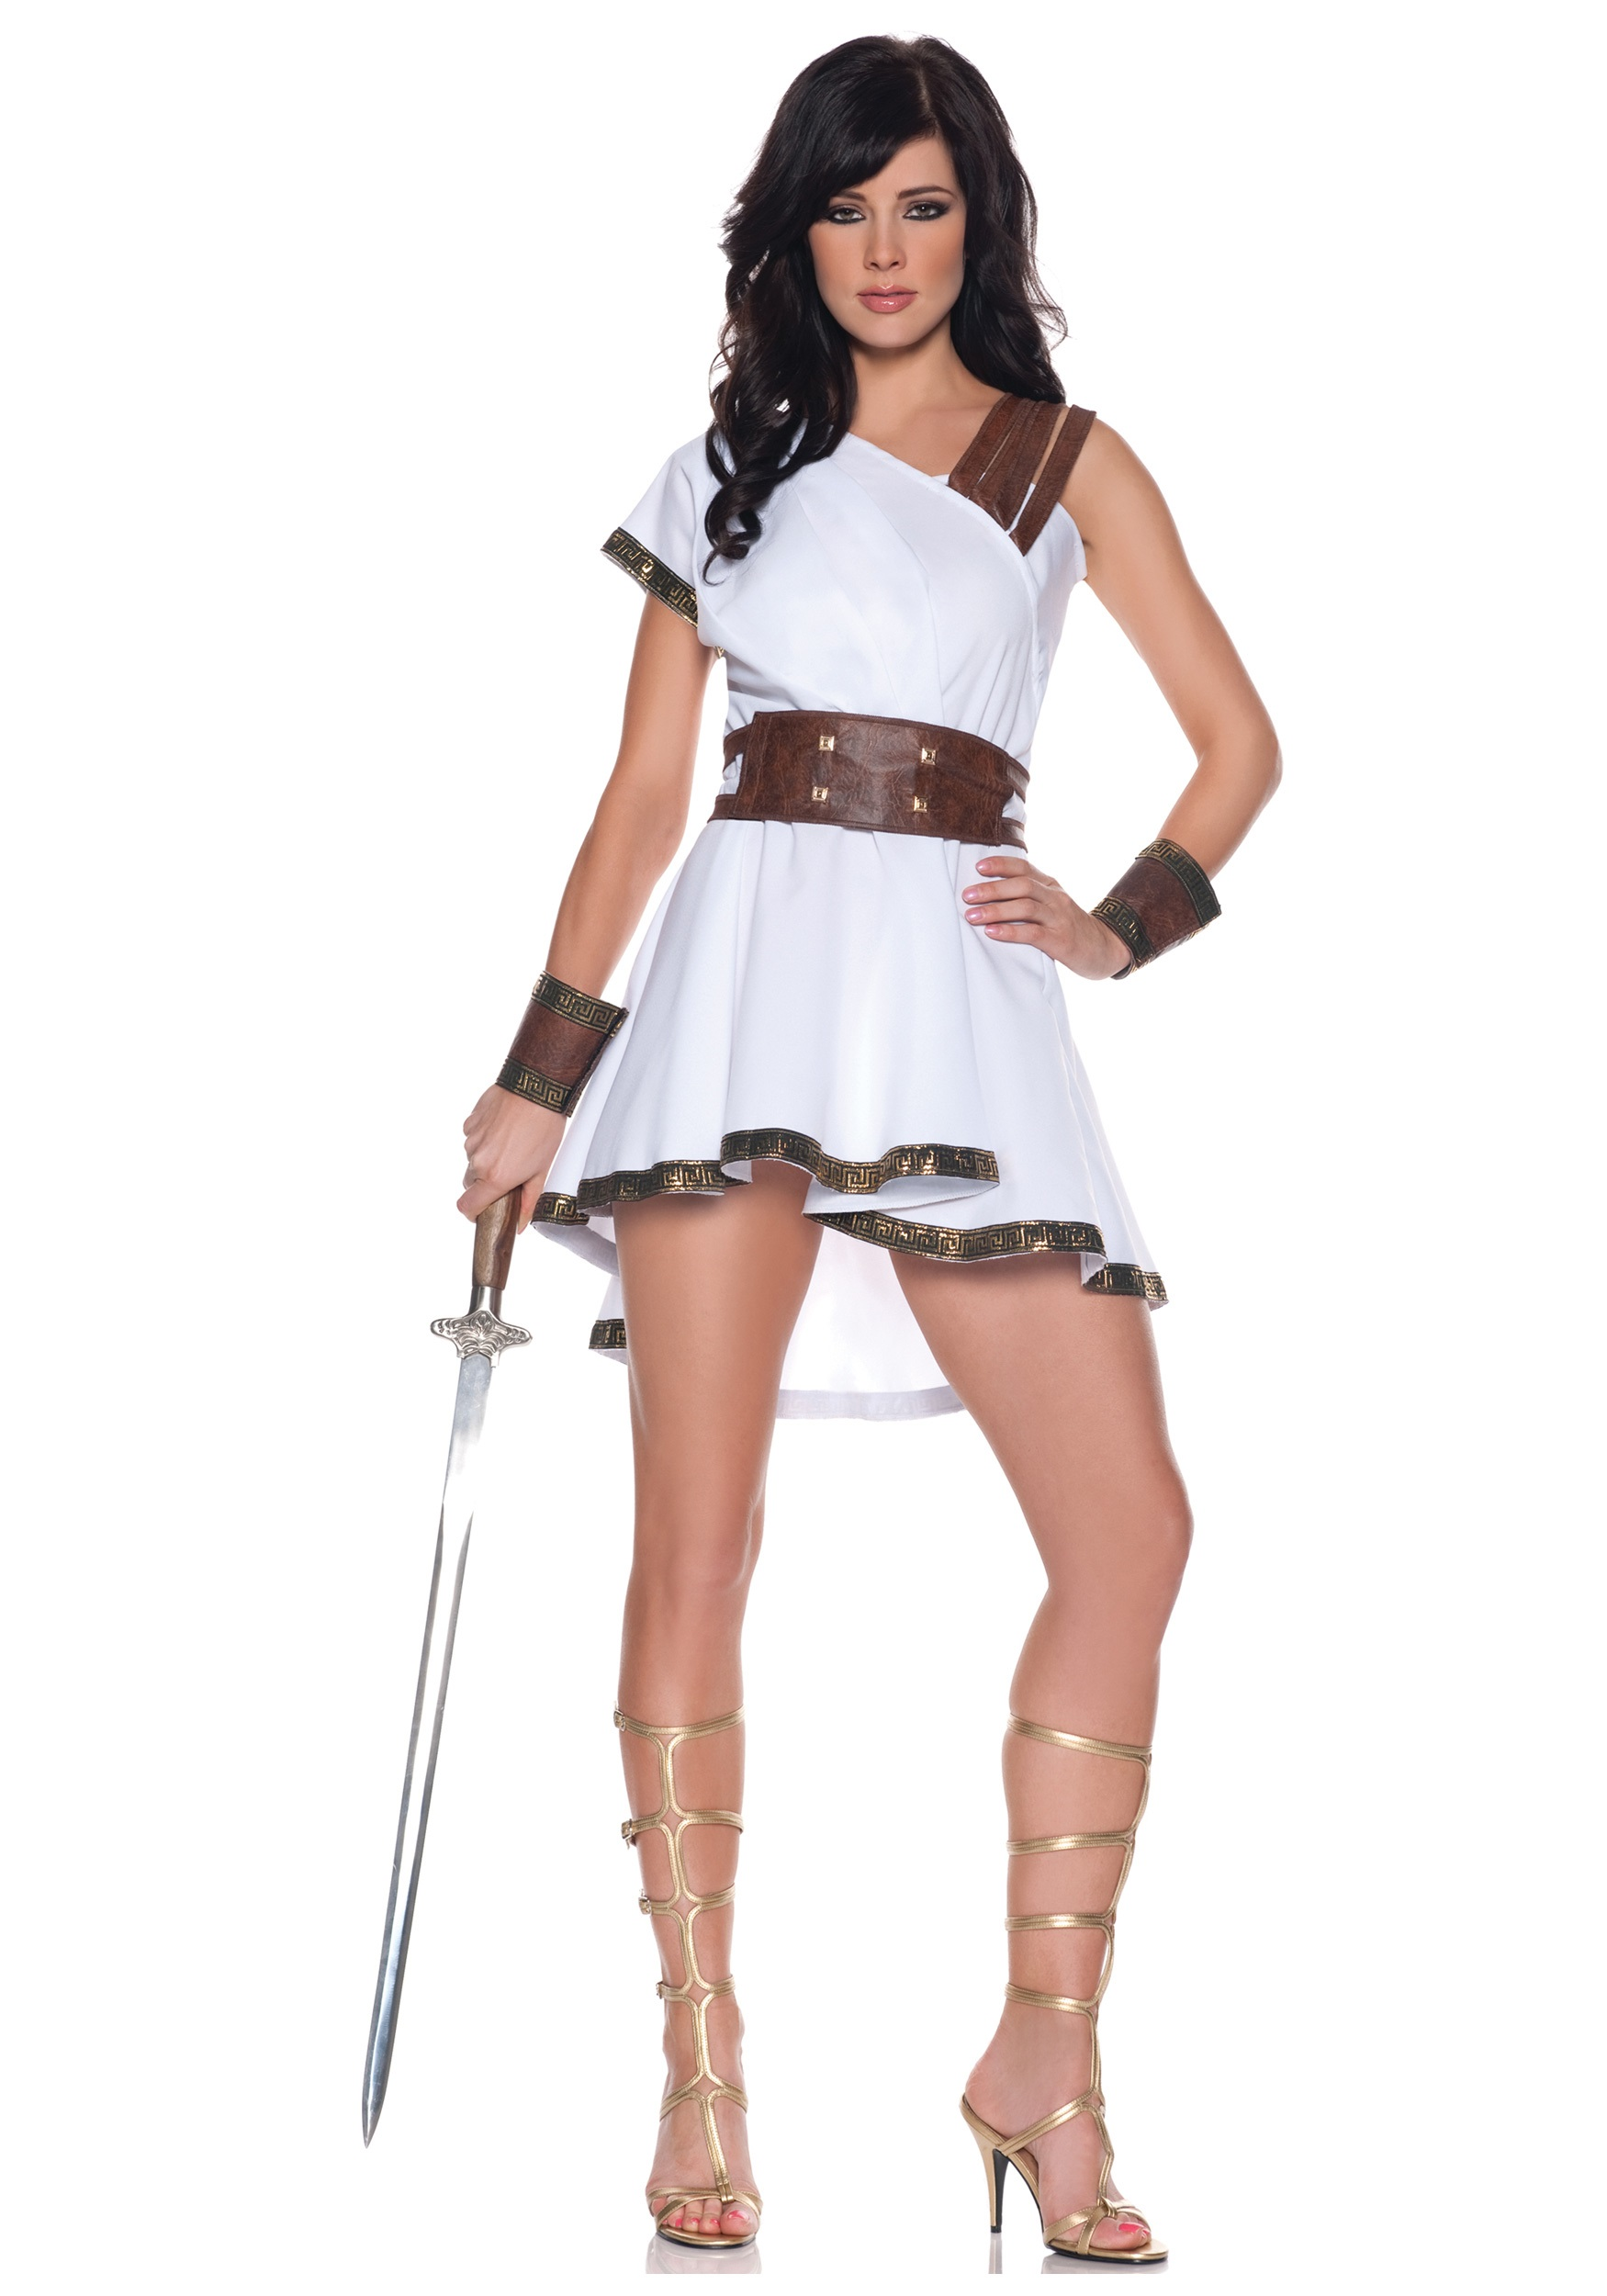 7bffdf151d3 Ancient Greek Olympia Costume - Women s Sexy Historic Costume Ideas